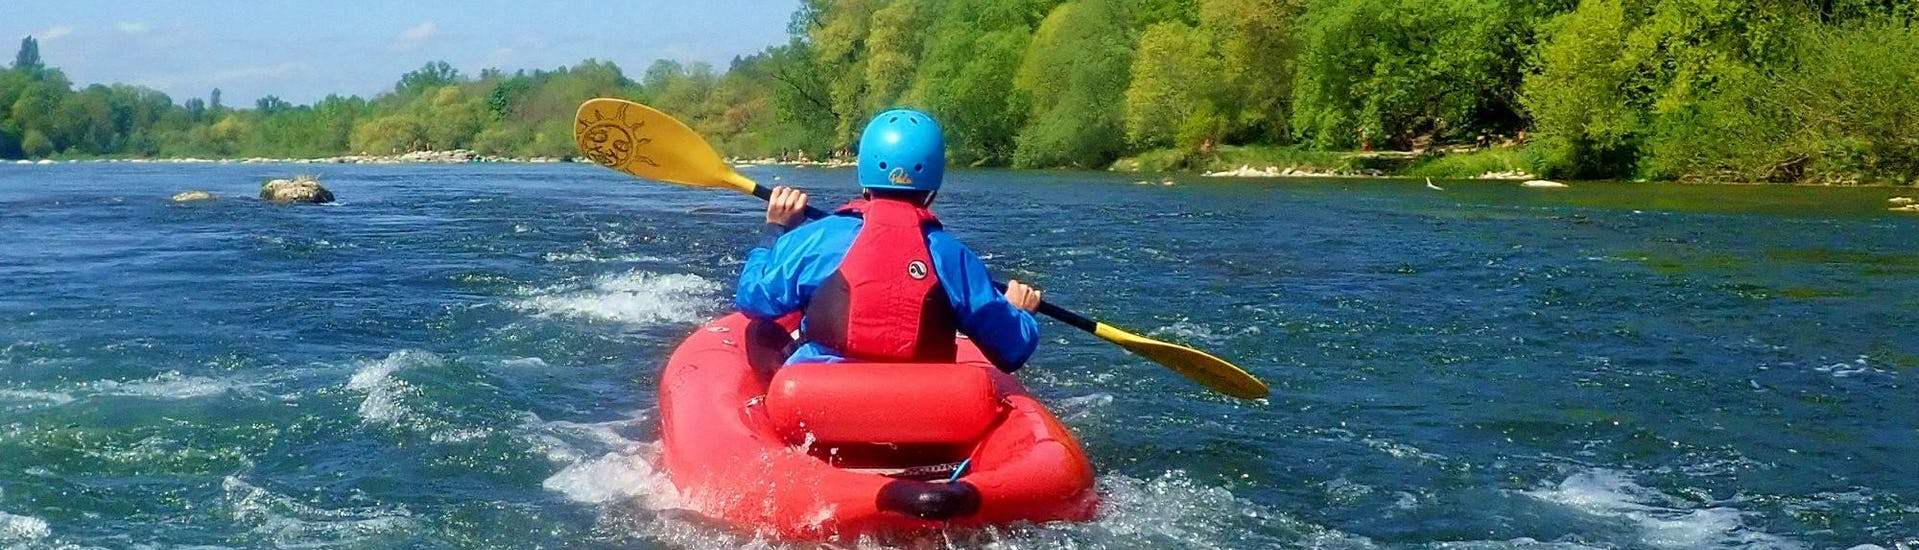 During the Rafting in a FUNYak on the Rhine - Flowing Rhine with Rheinraft, a participant is paddling along the beautiful Rhine river.